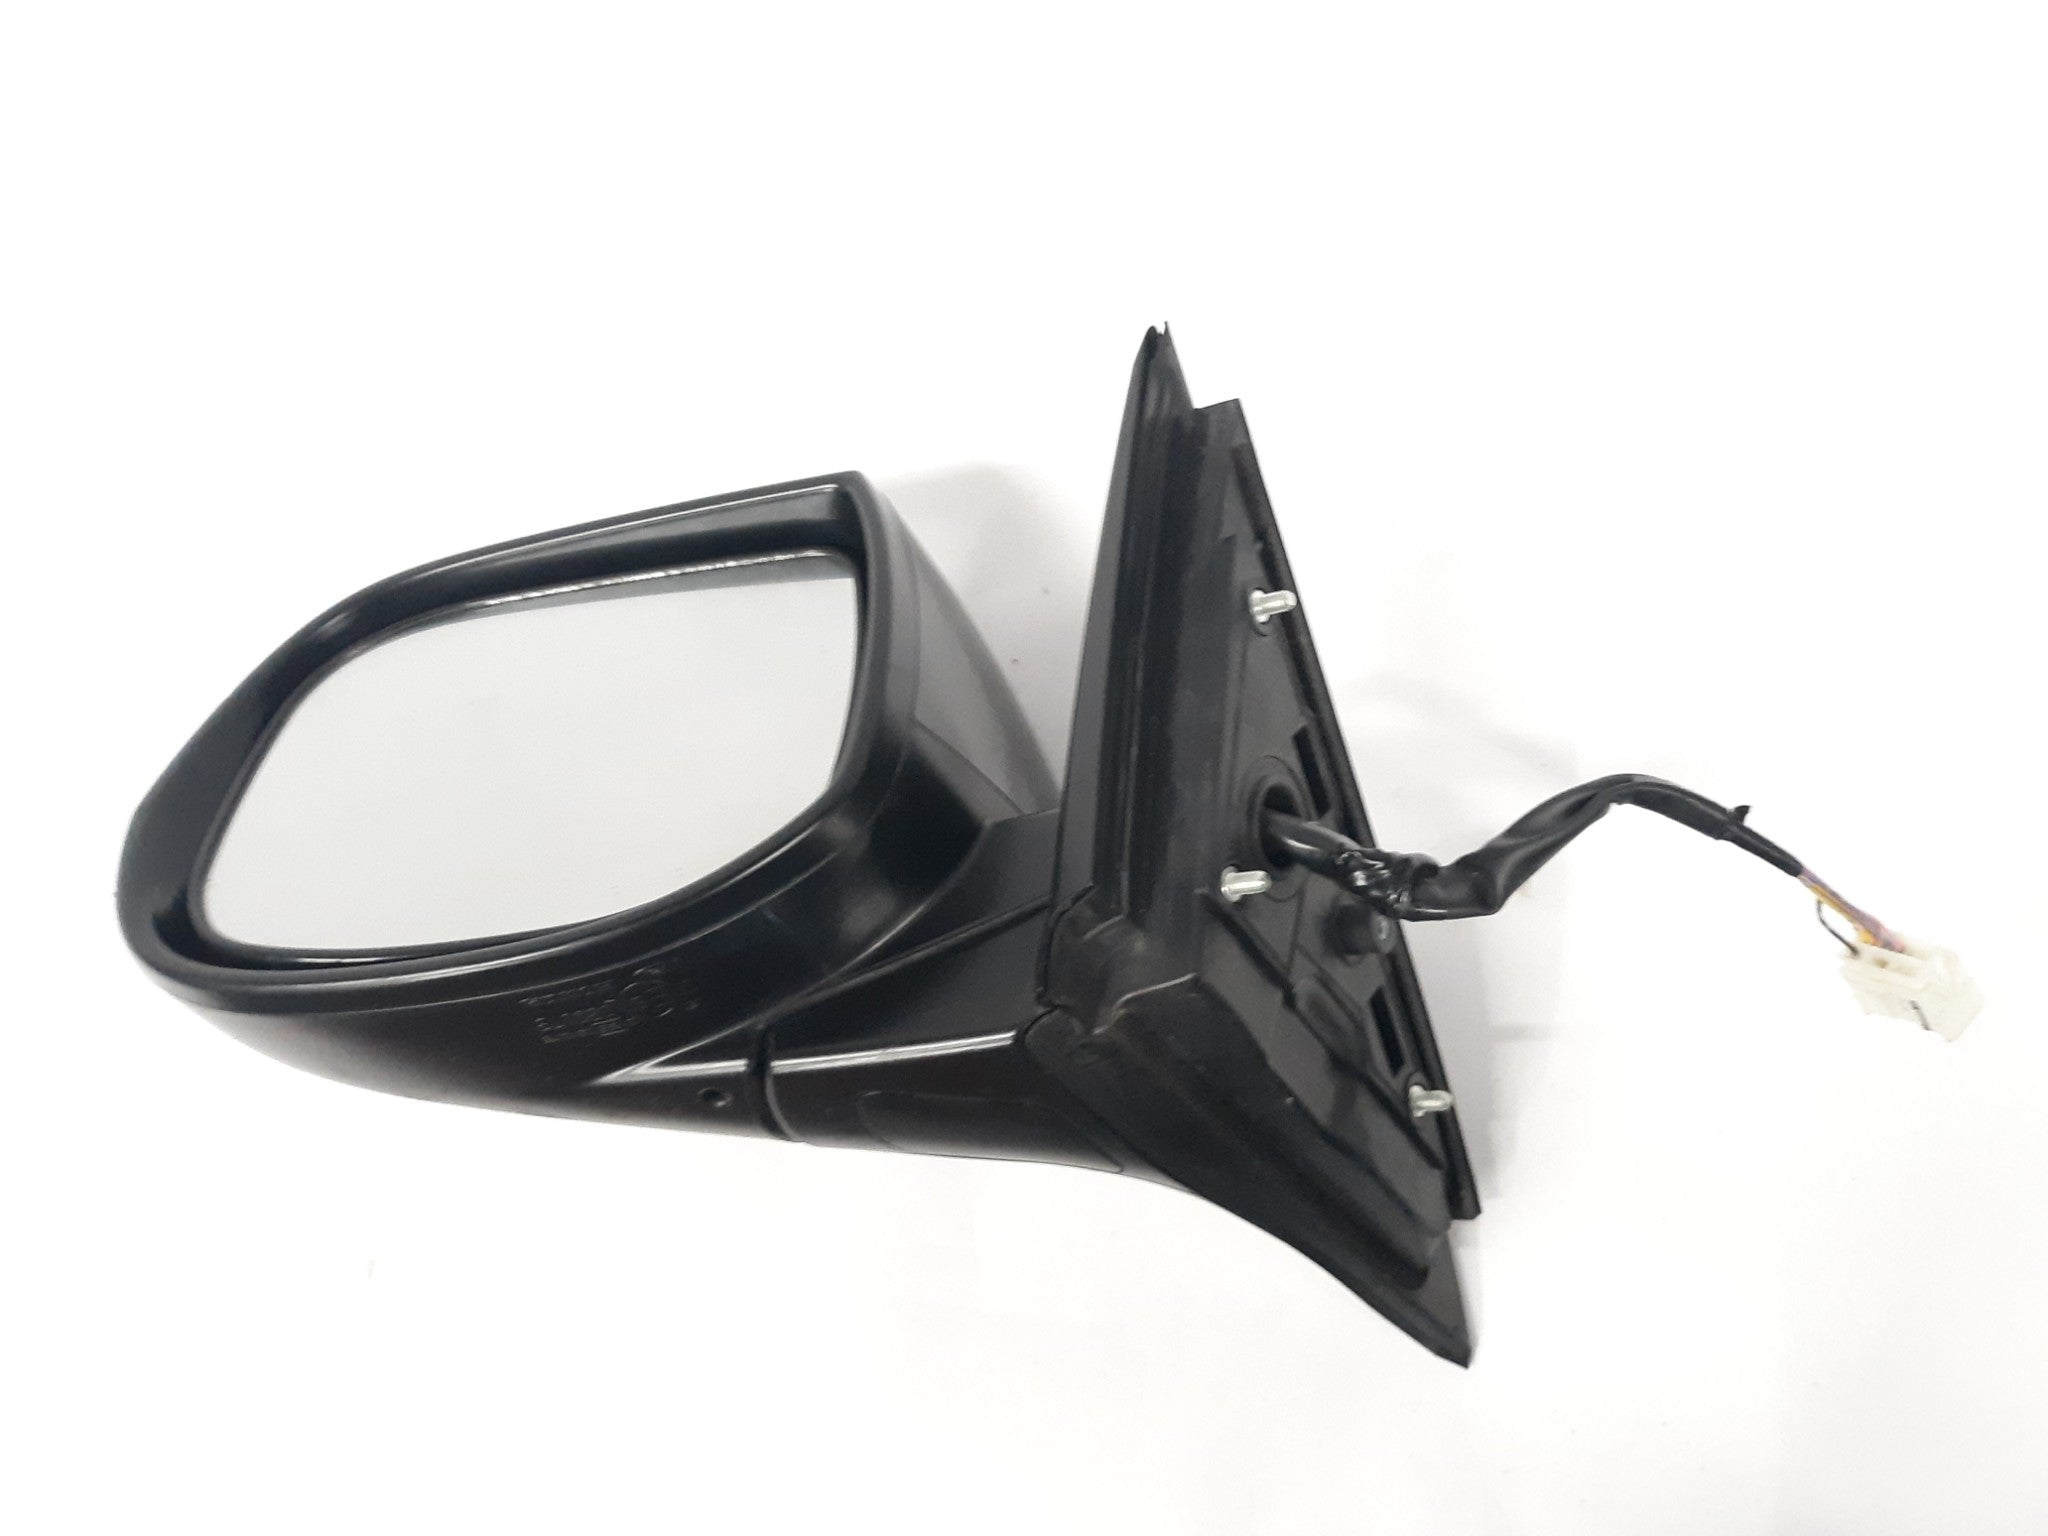 ACURA TSX LEFT DOOR MIRROR BLACK 2009 2010 2011 2012 2013 2014 OEM E6020173